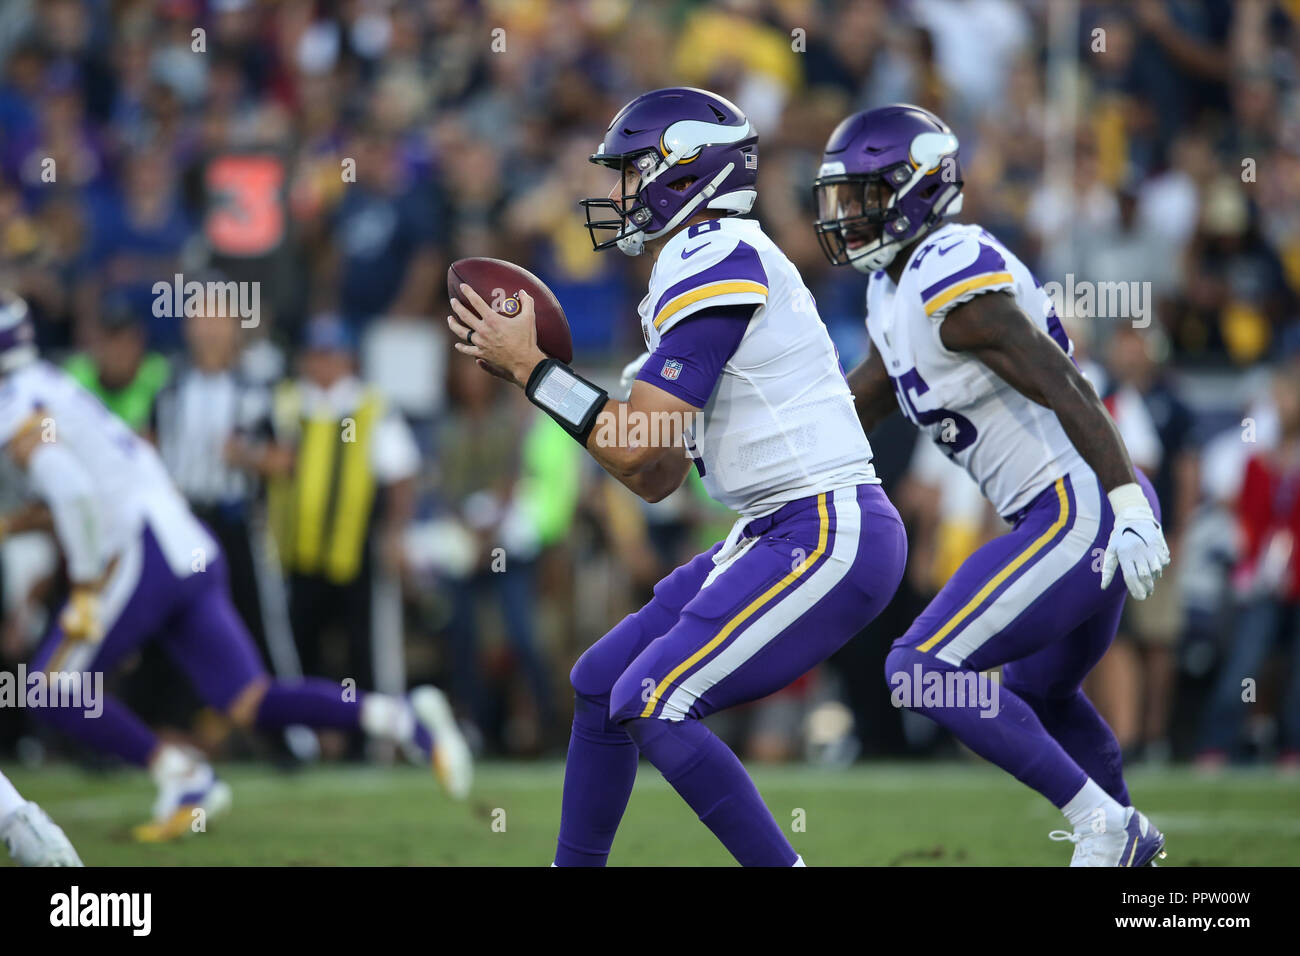 Los Angeles, CA, USA. 27th Sep, 2018. Minnesota Vikings quarterback Kirk Cousins (8) getting the snap during the NFL Minnesota Vikings vs Los Angeles Rams at the Los Angeles Memorial Coliseum in Los Angeles, Ca on September 27, 2018. Jevone Moore Credit: csm/Alamy Live News - Stock Image